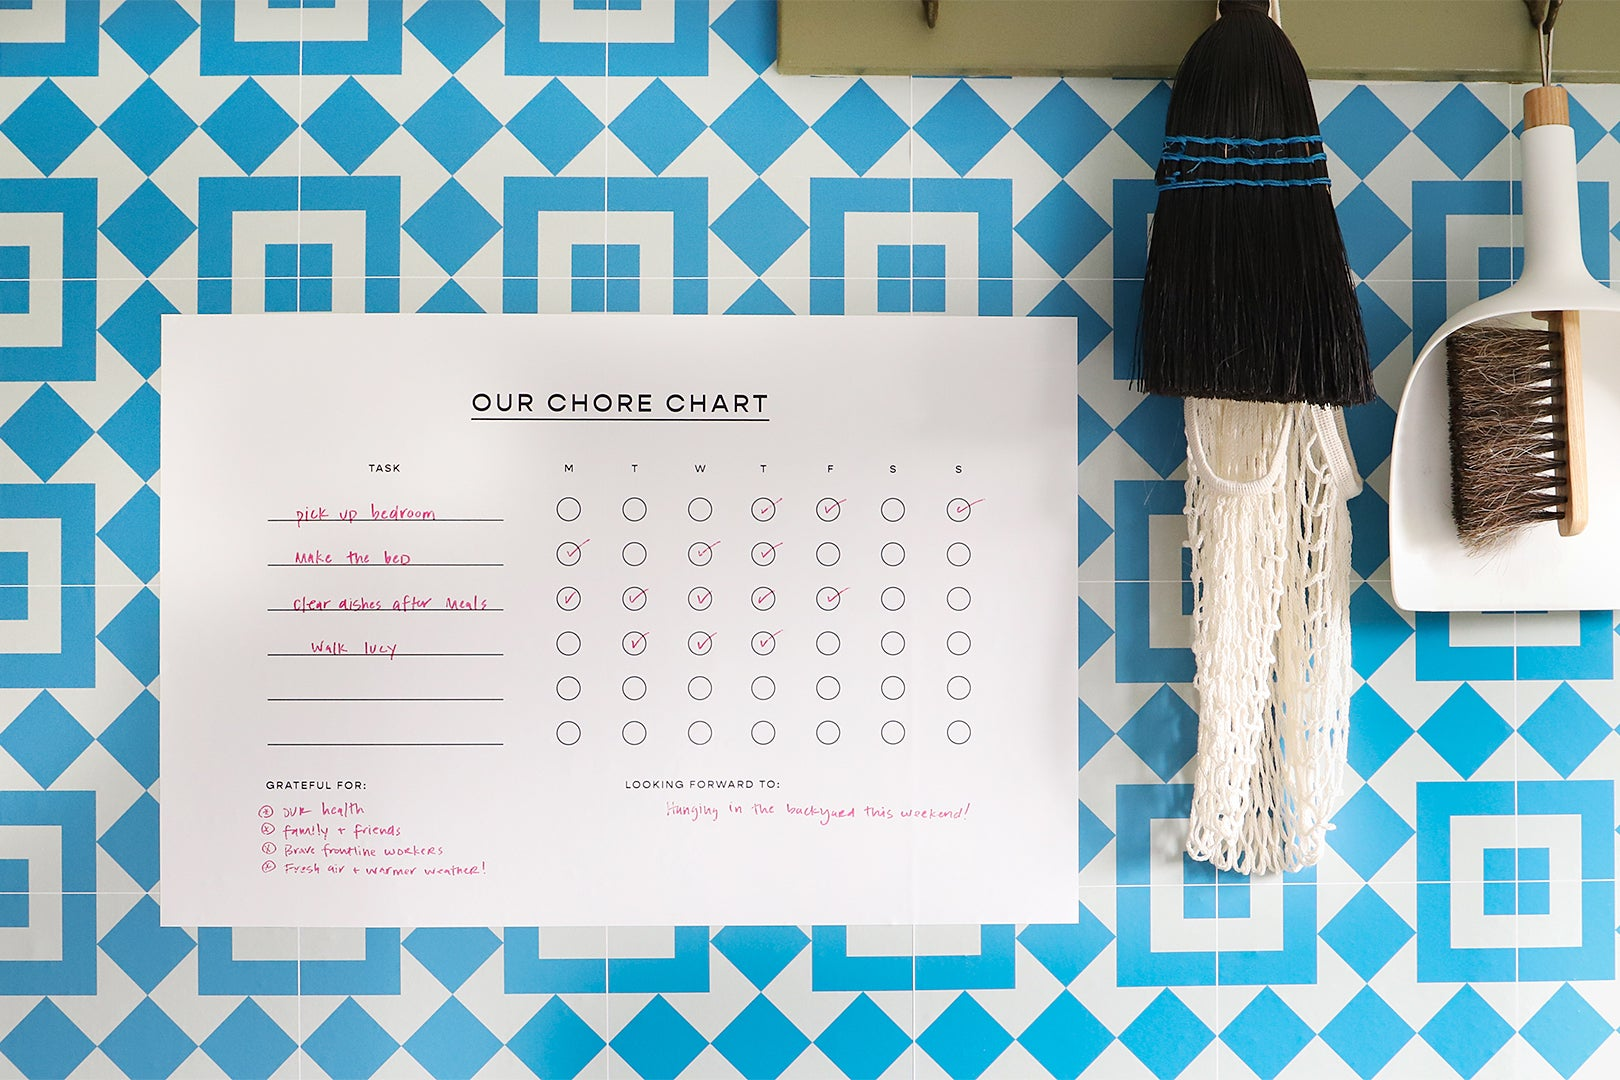 blue tile wall wiht chore chart